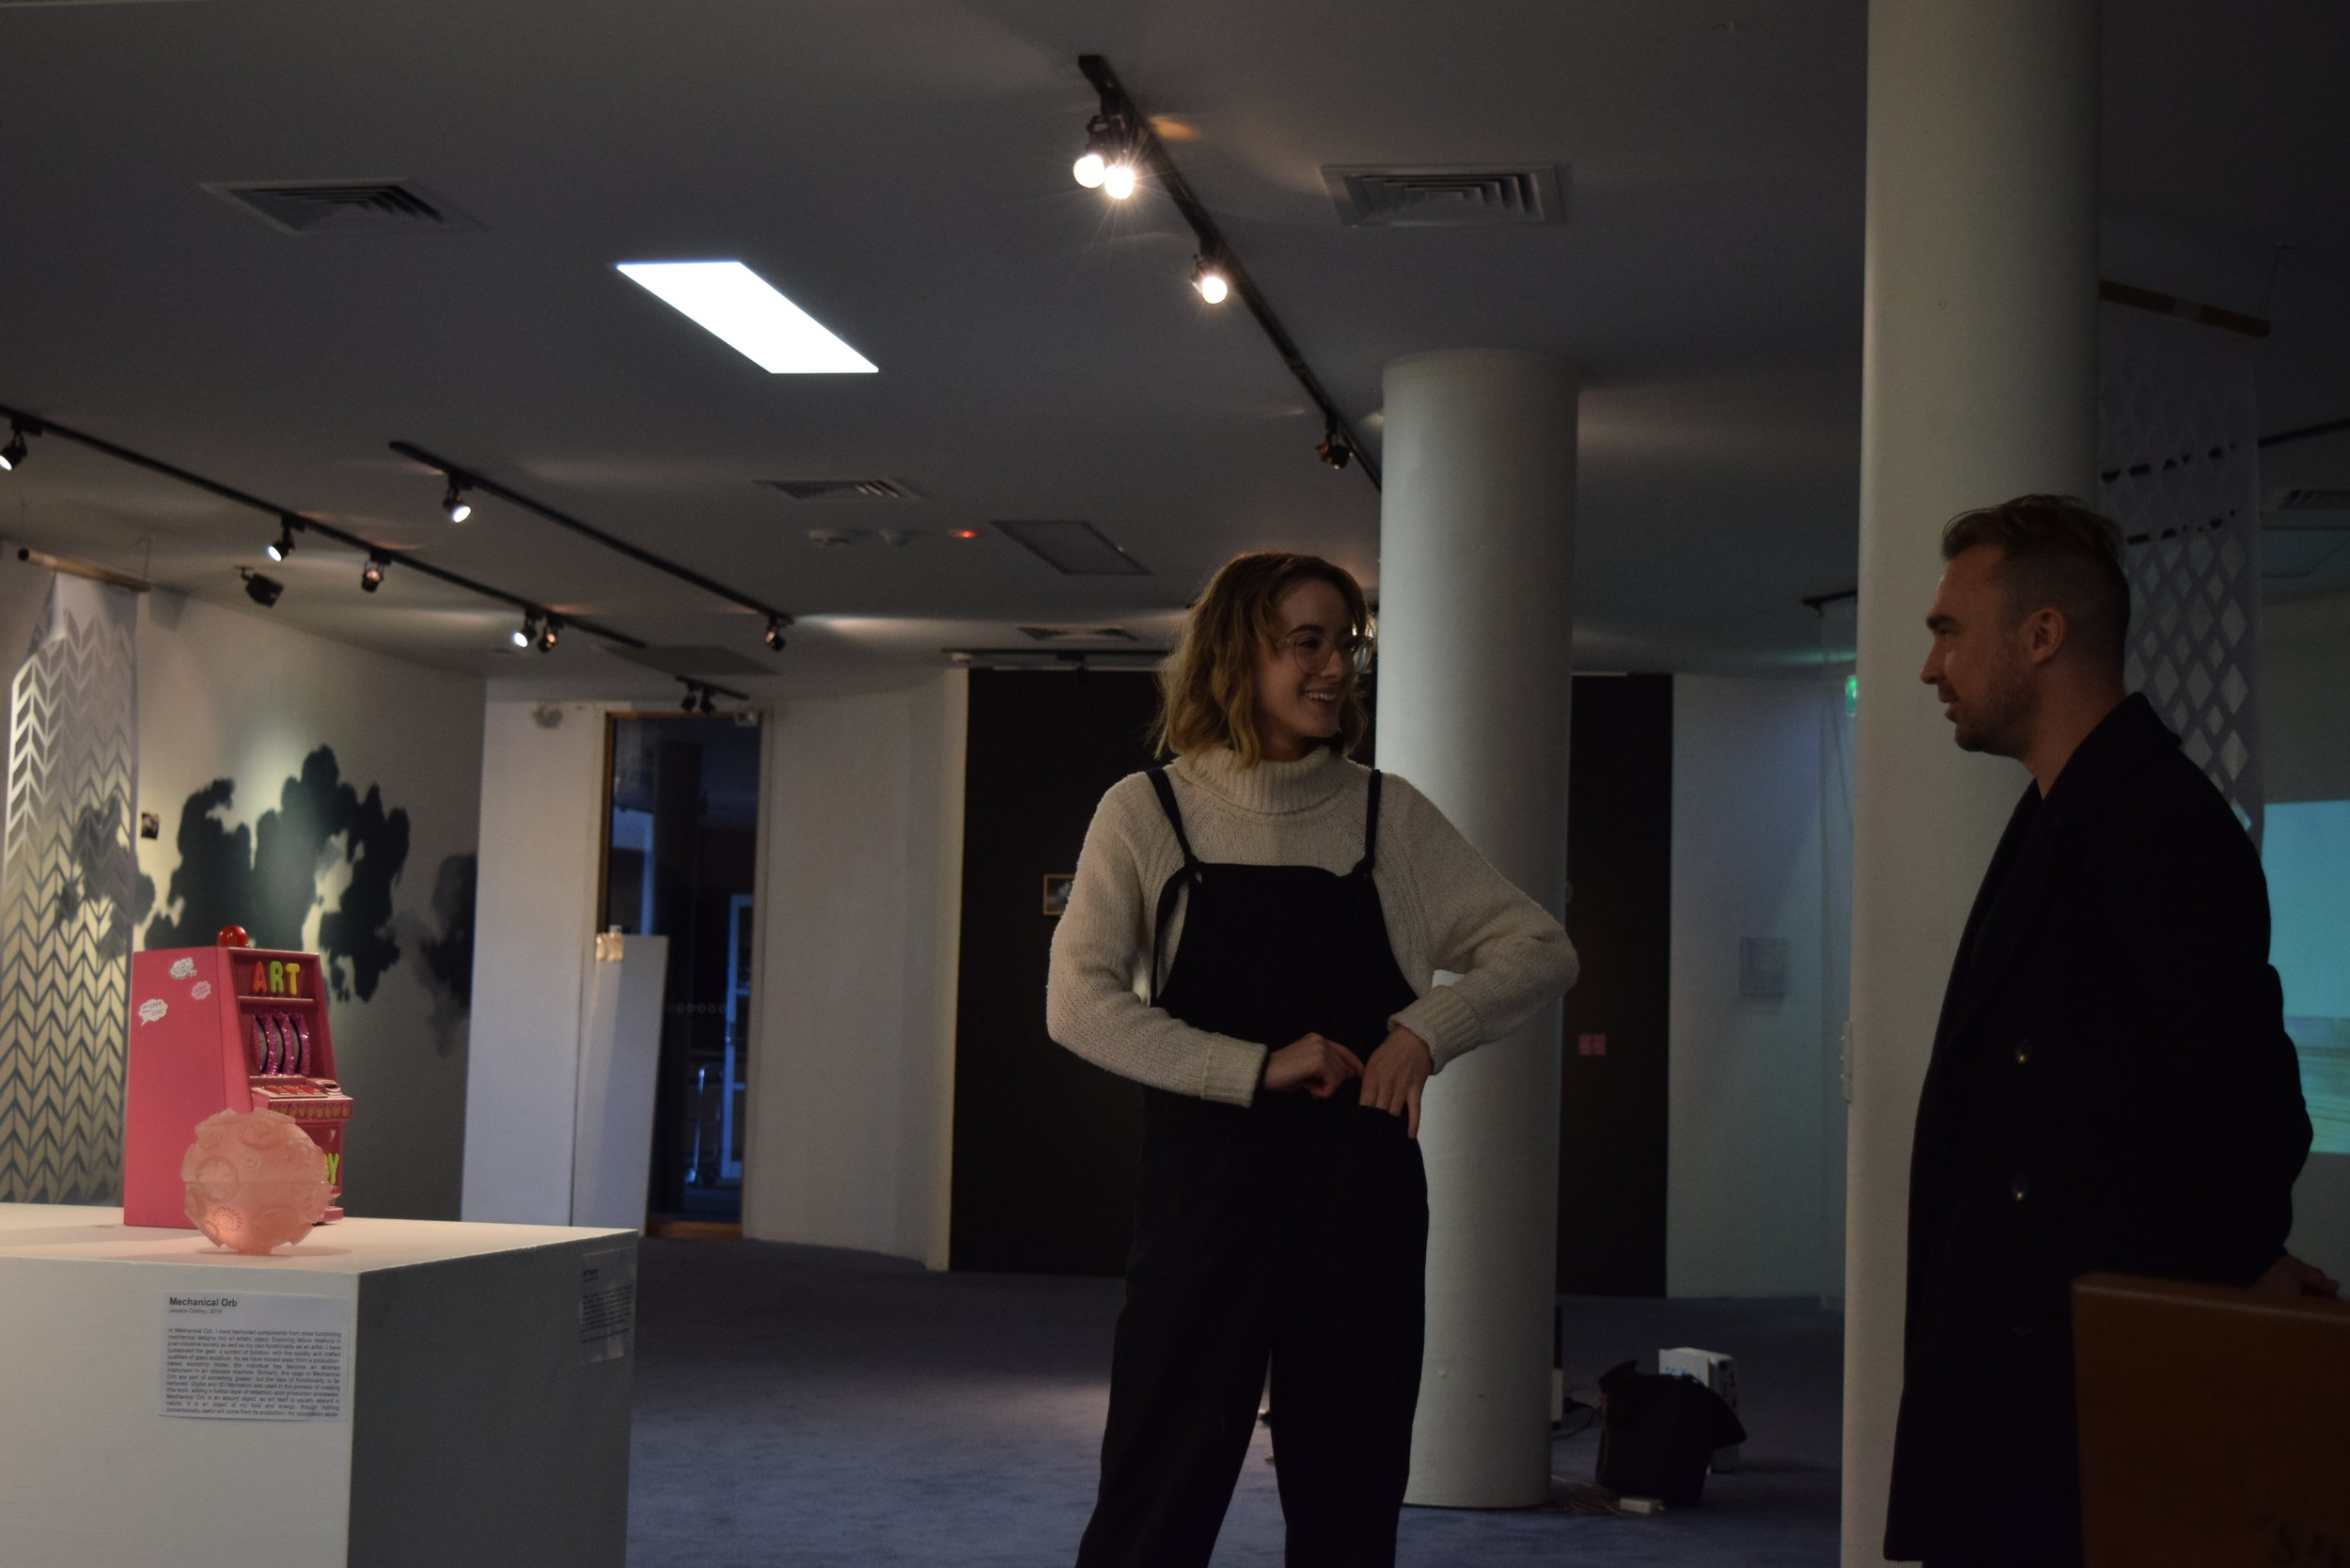 Artist Jessica Coldrey speaking with mentor Dave Thomson